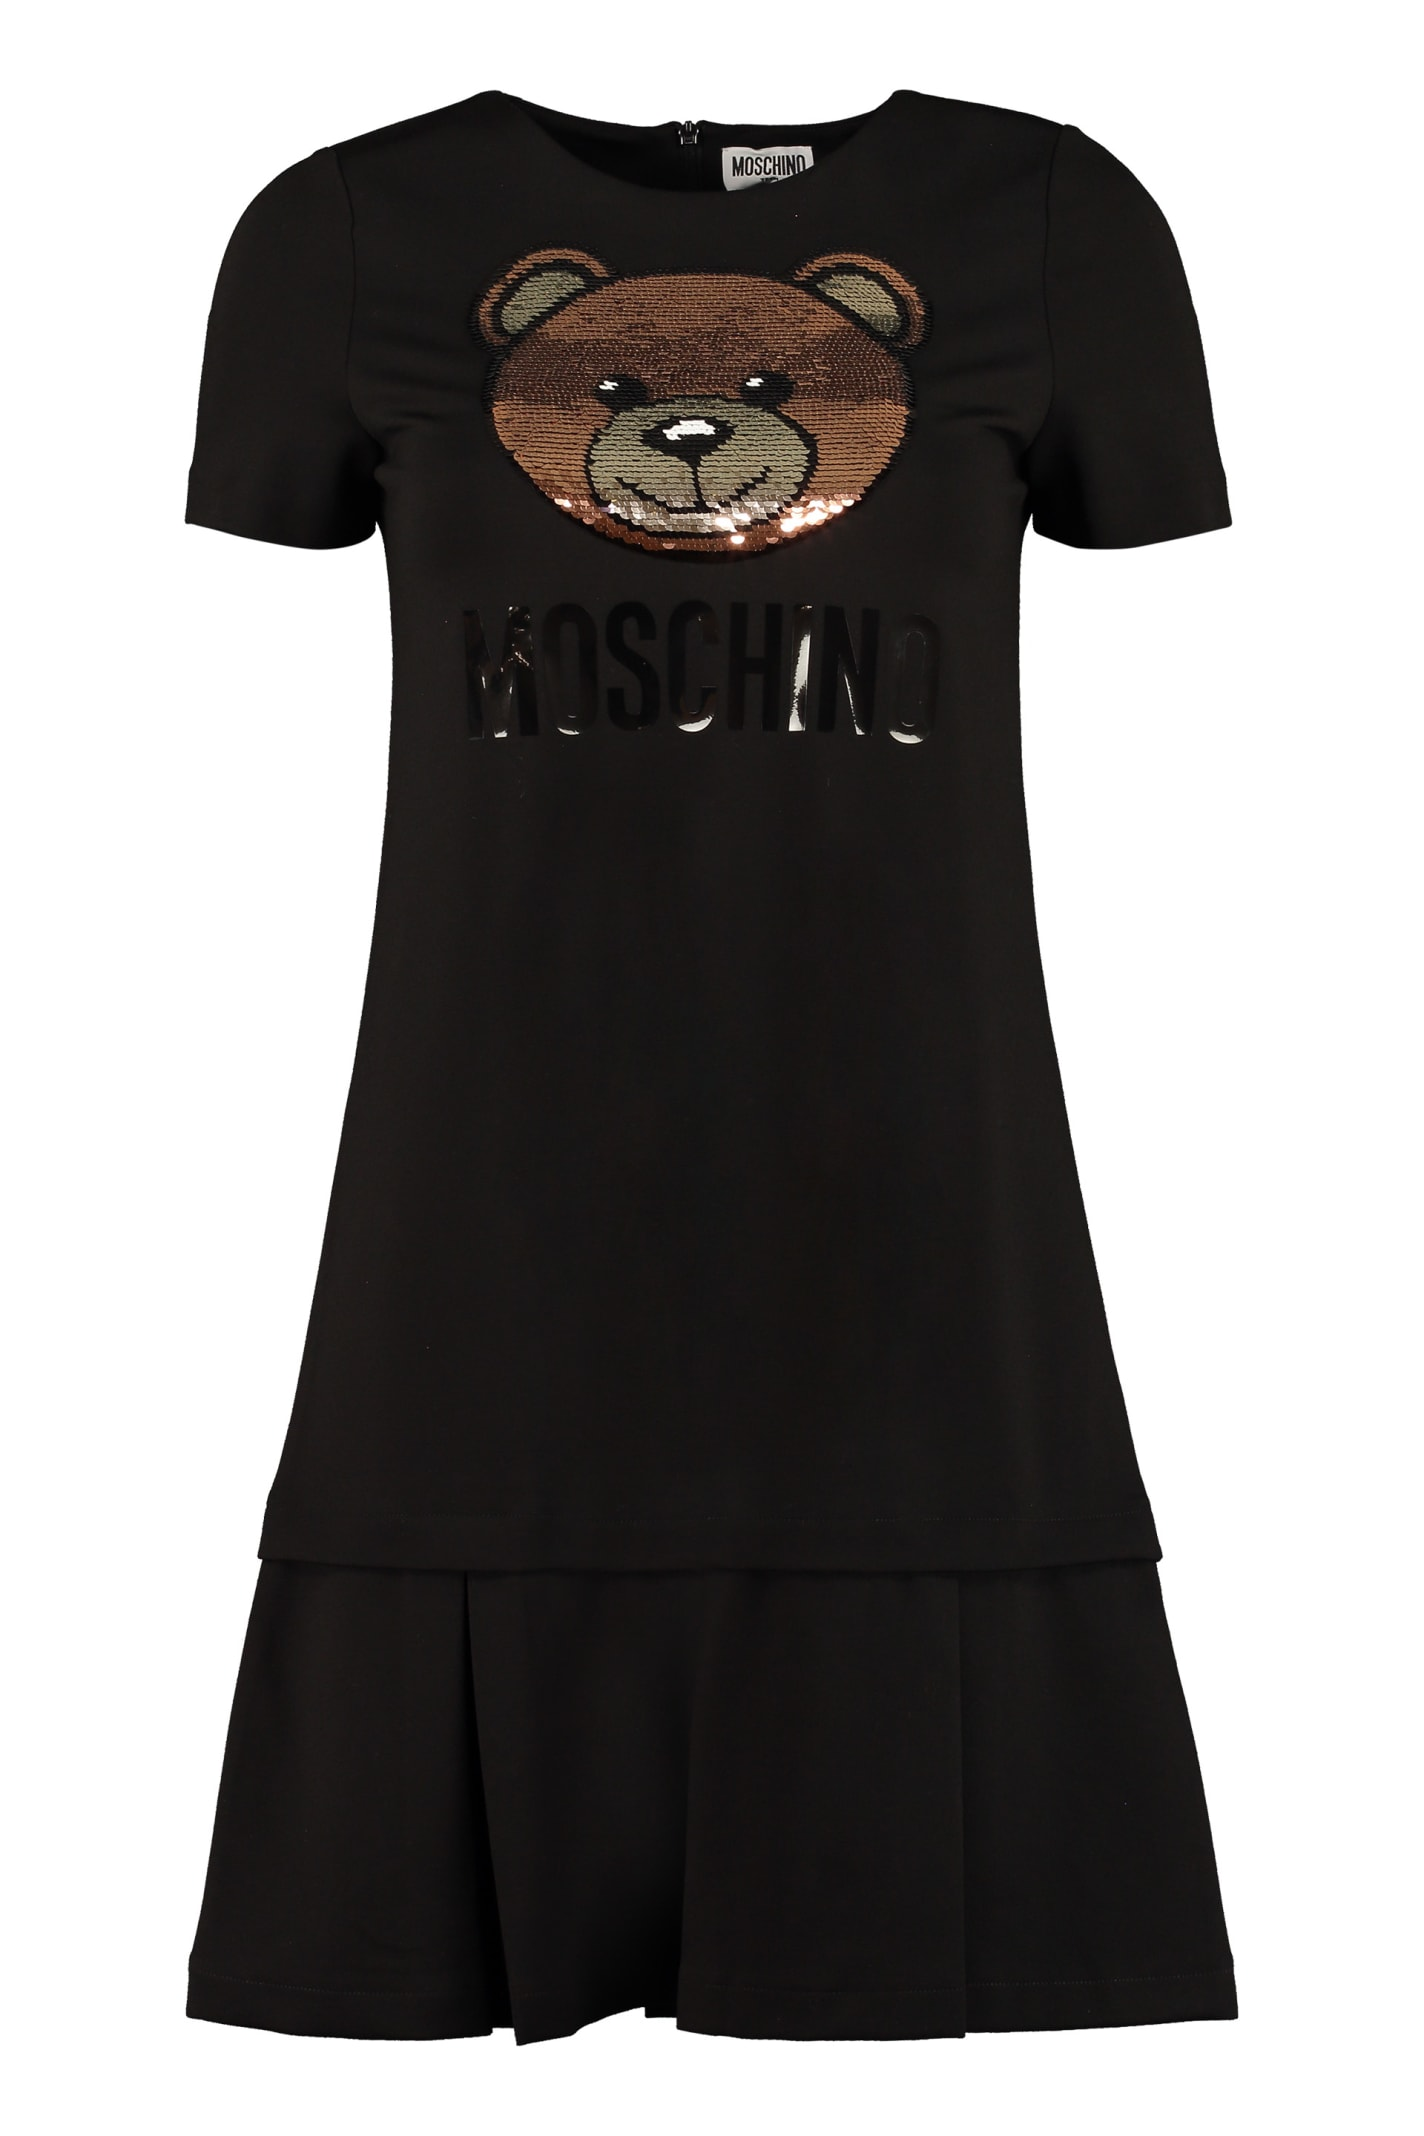 Moschino Sequin Embroidery Dress